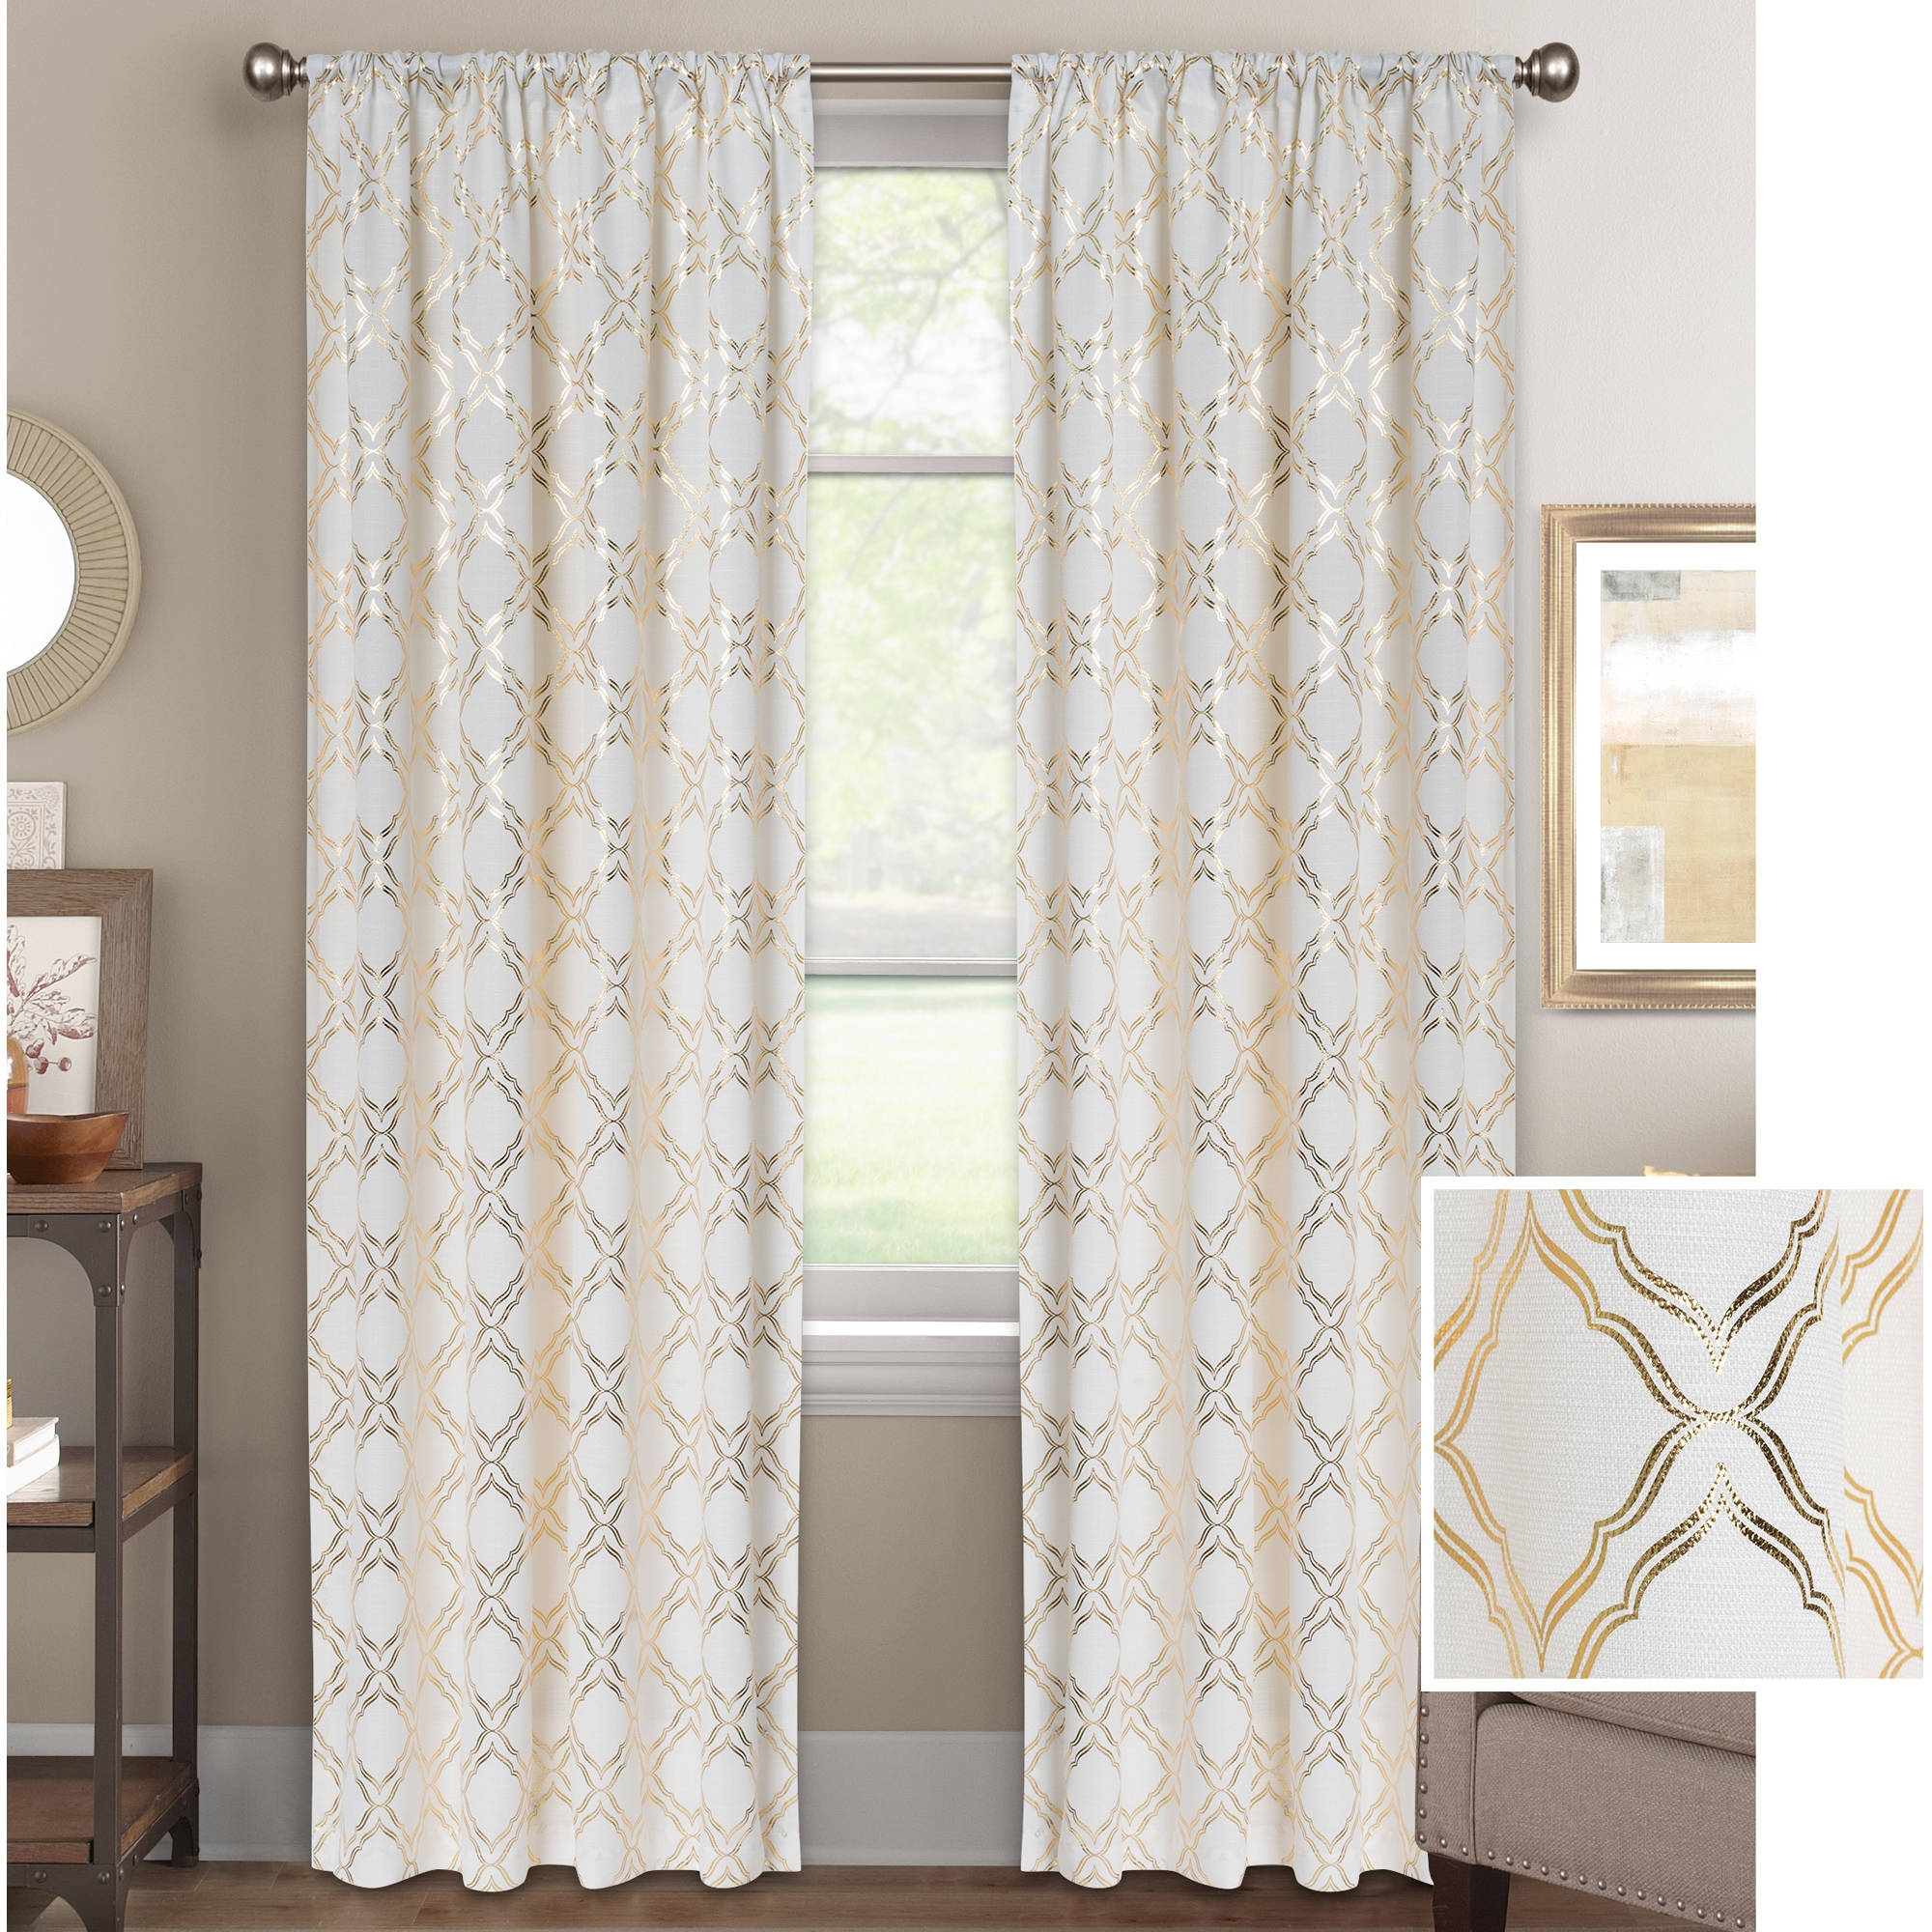 Better Homes And Gardens Metallic Trellis Gold Or Silver Foil Pertaining To Turquoise Trellis Curtains (View 10 of 25)